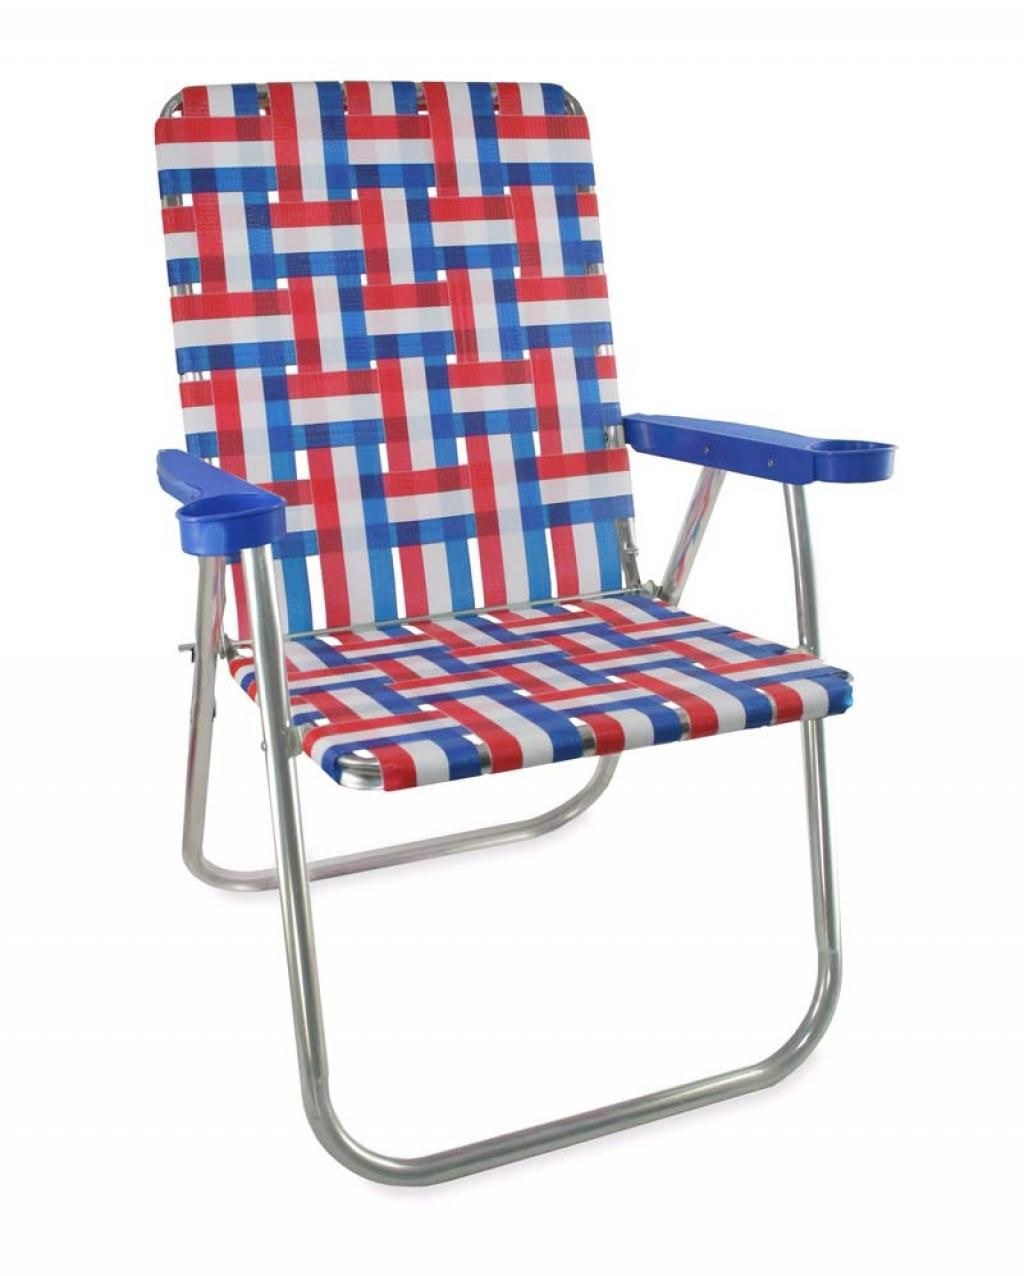 Beau Leisure Time With Best Lawn Chair Design